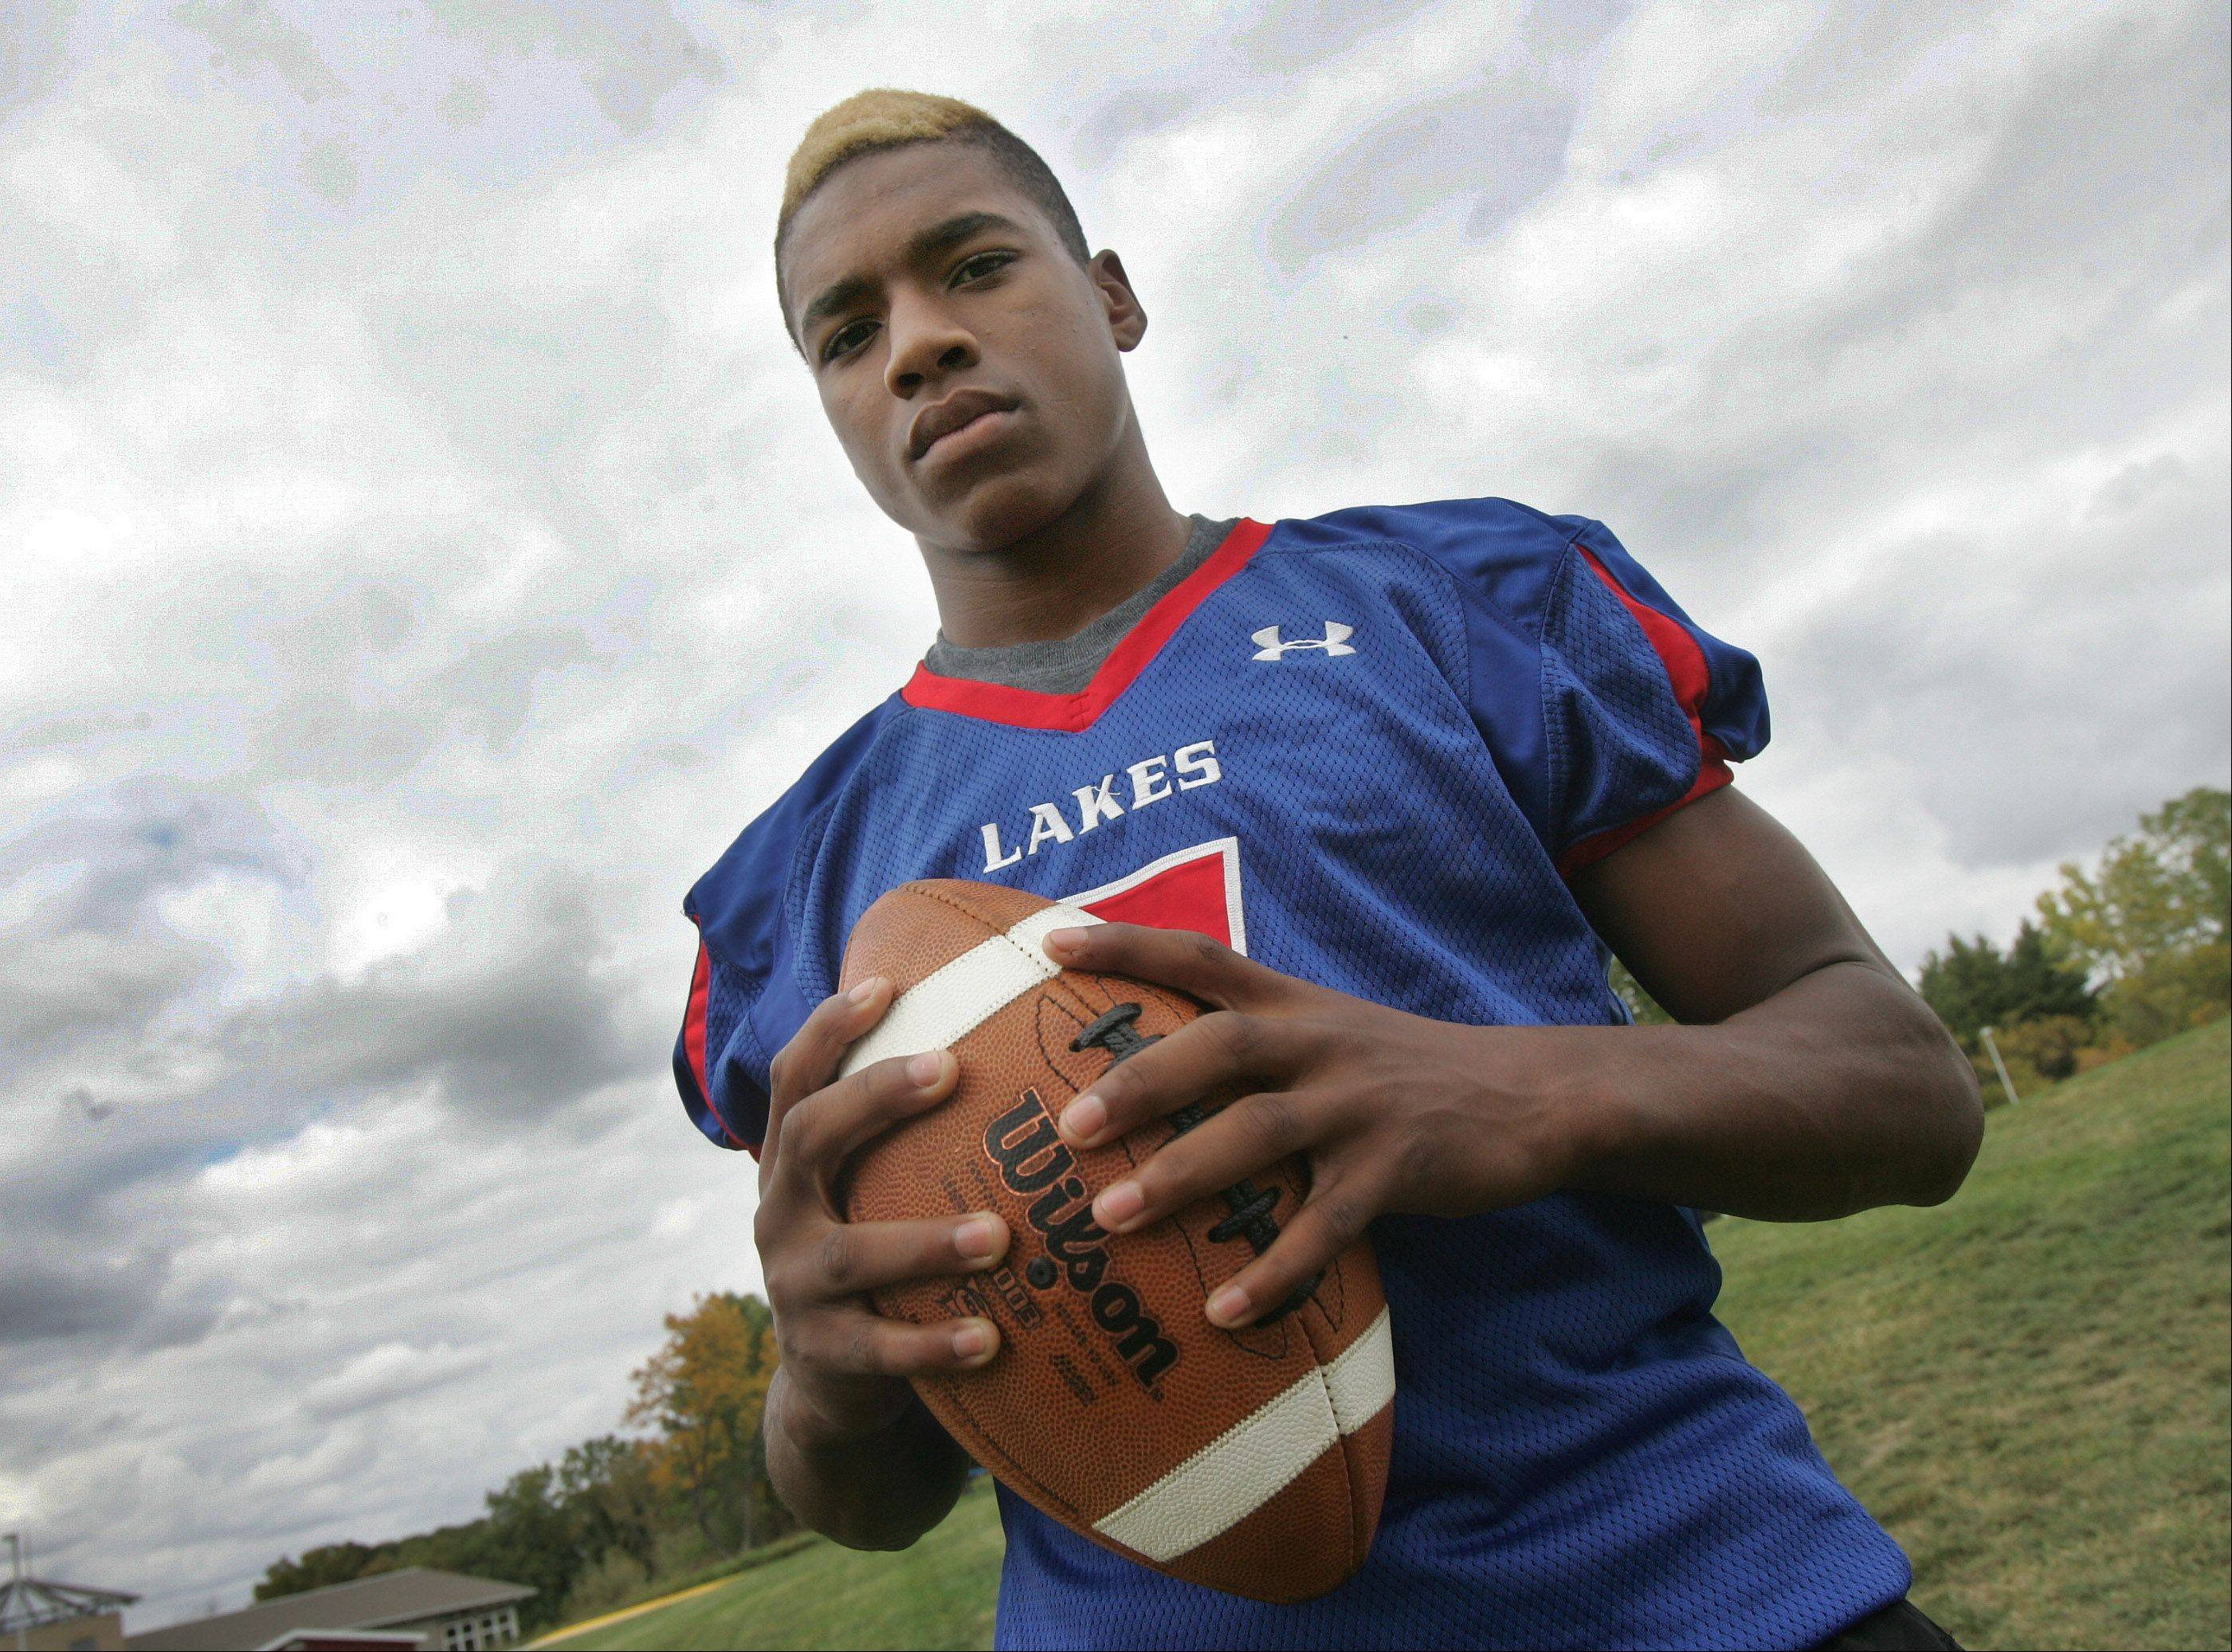 Sports has helped Lakes receiver Andrew Spencer meet the challenge of growing up without his father.